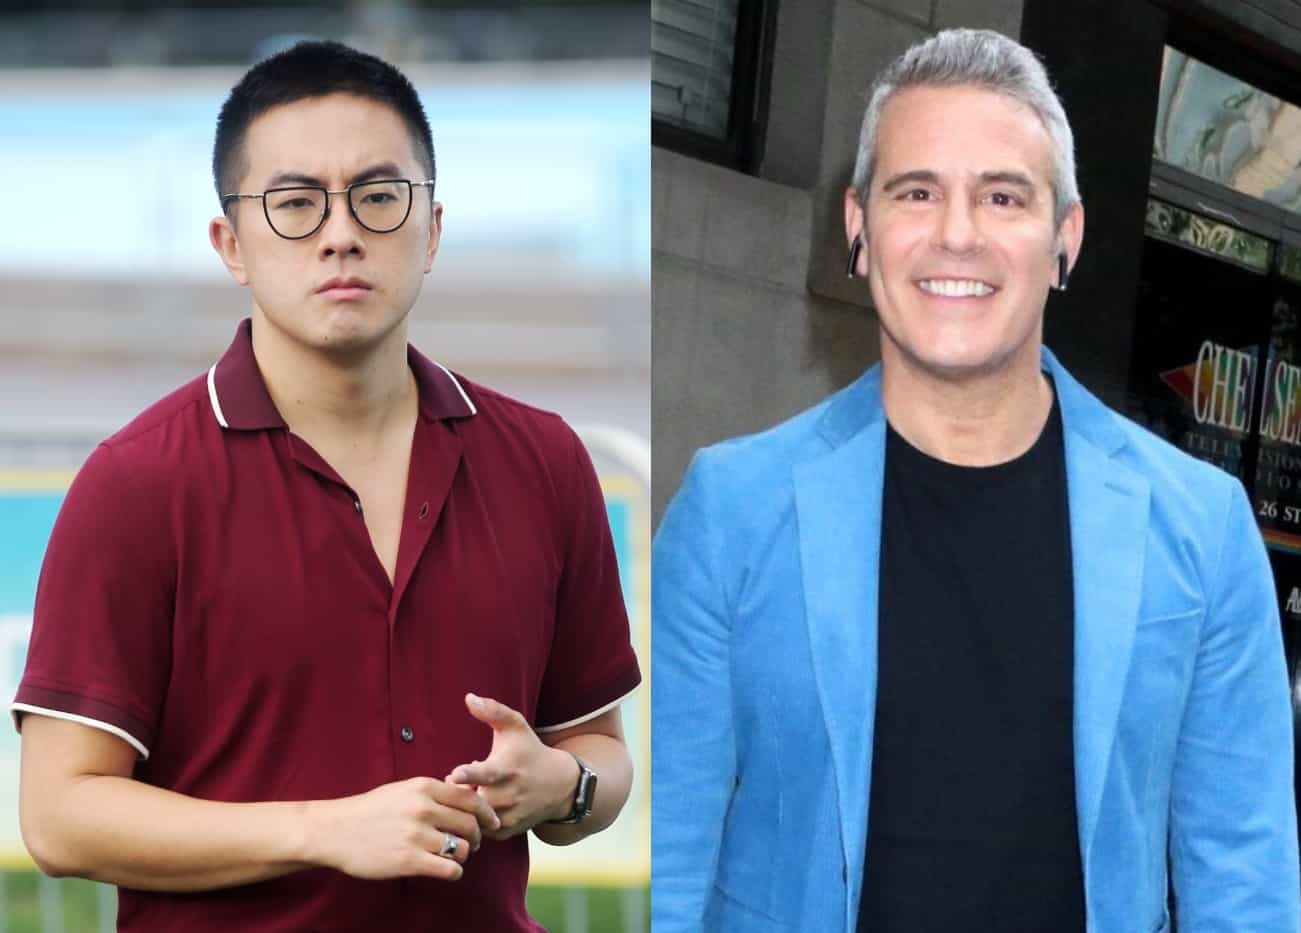 """SNL's Bowen Yang Suggests He's Banned From WWHL for Calling This Housewife a """"White Supremacist"""""""